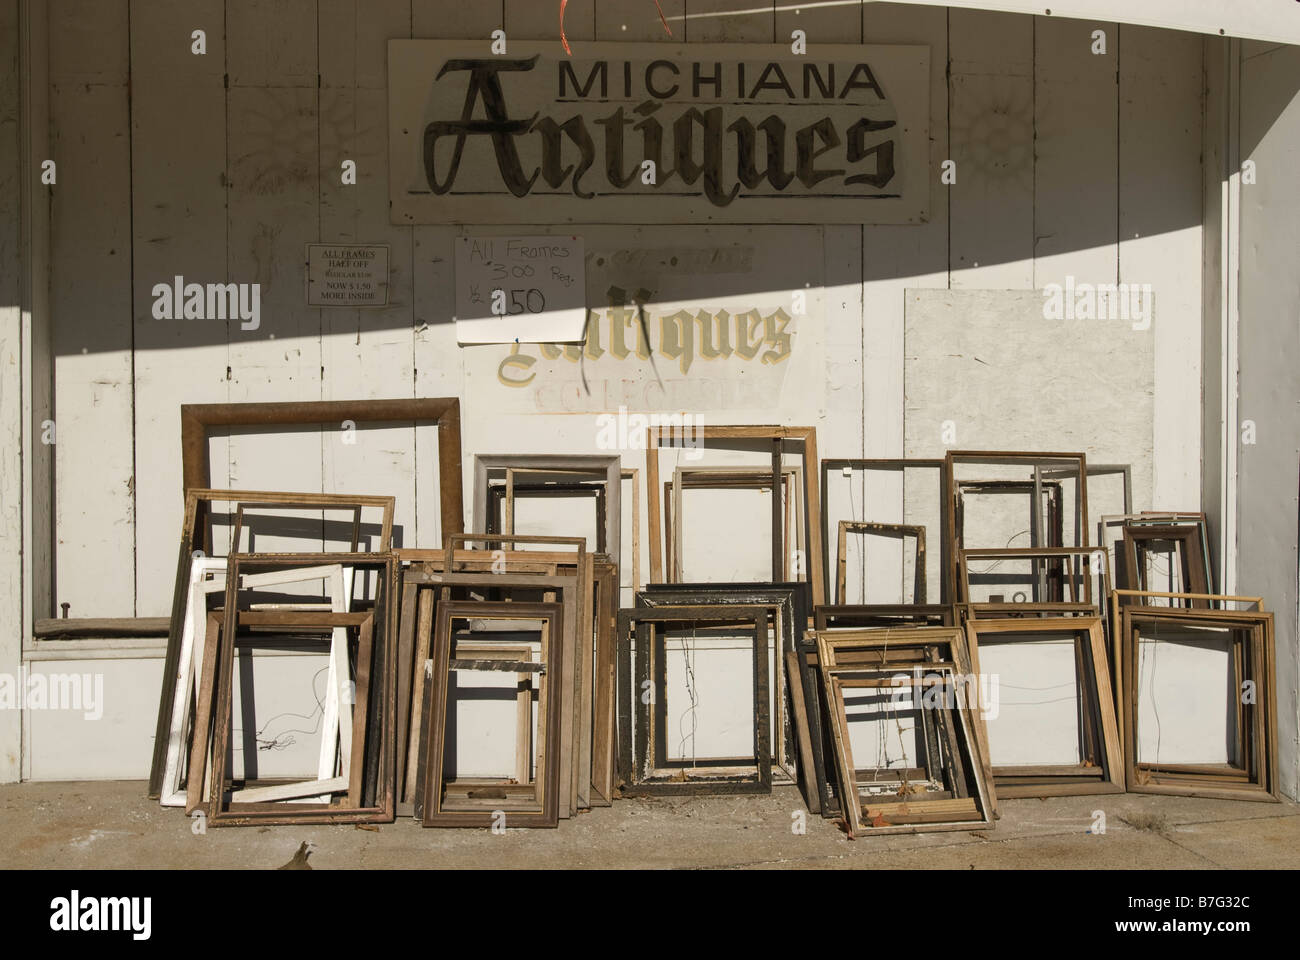 Old Picture Frames For Sale At Michiana Antiques In Michigan Usa